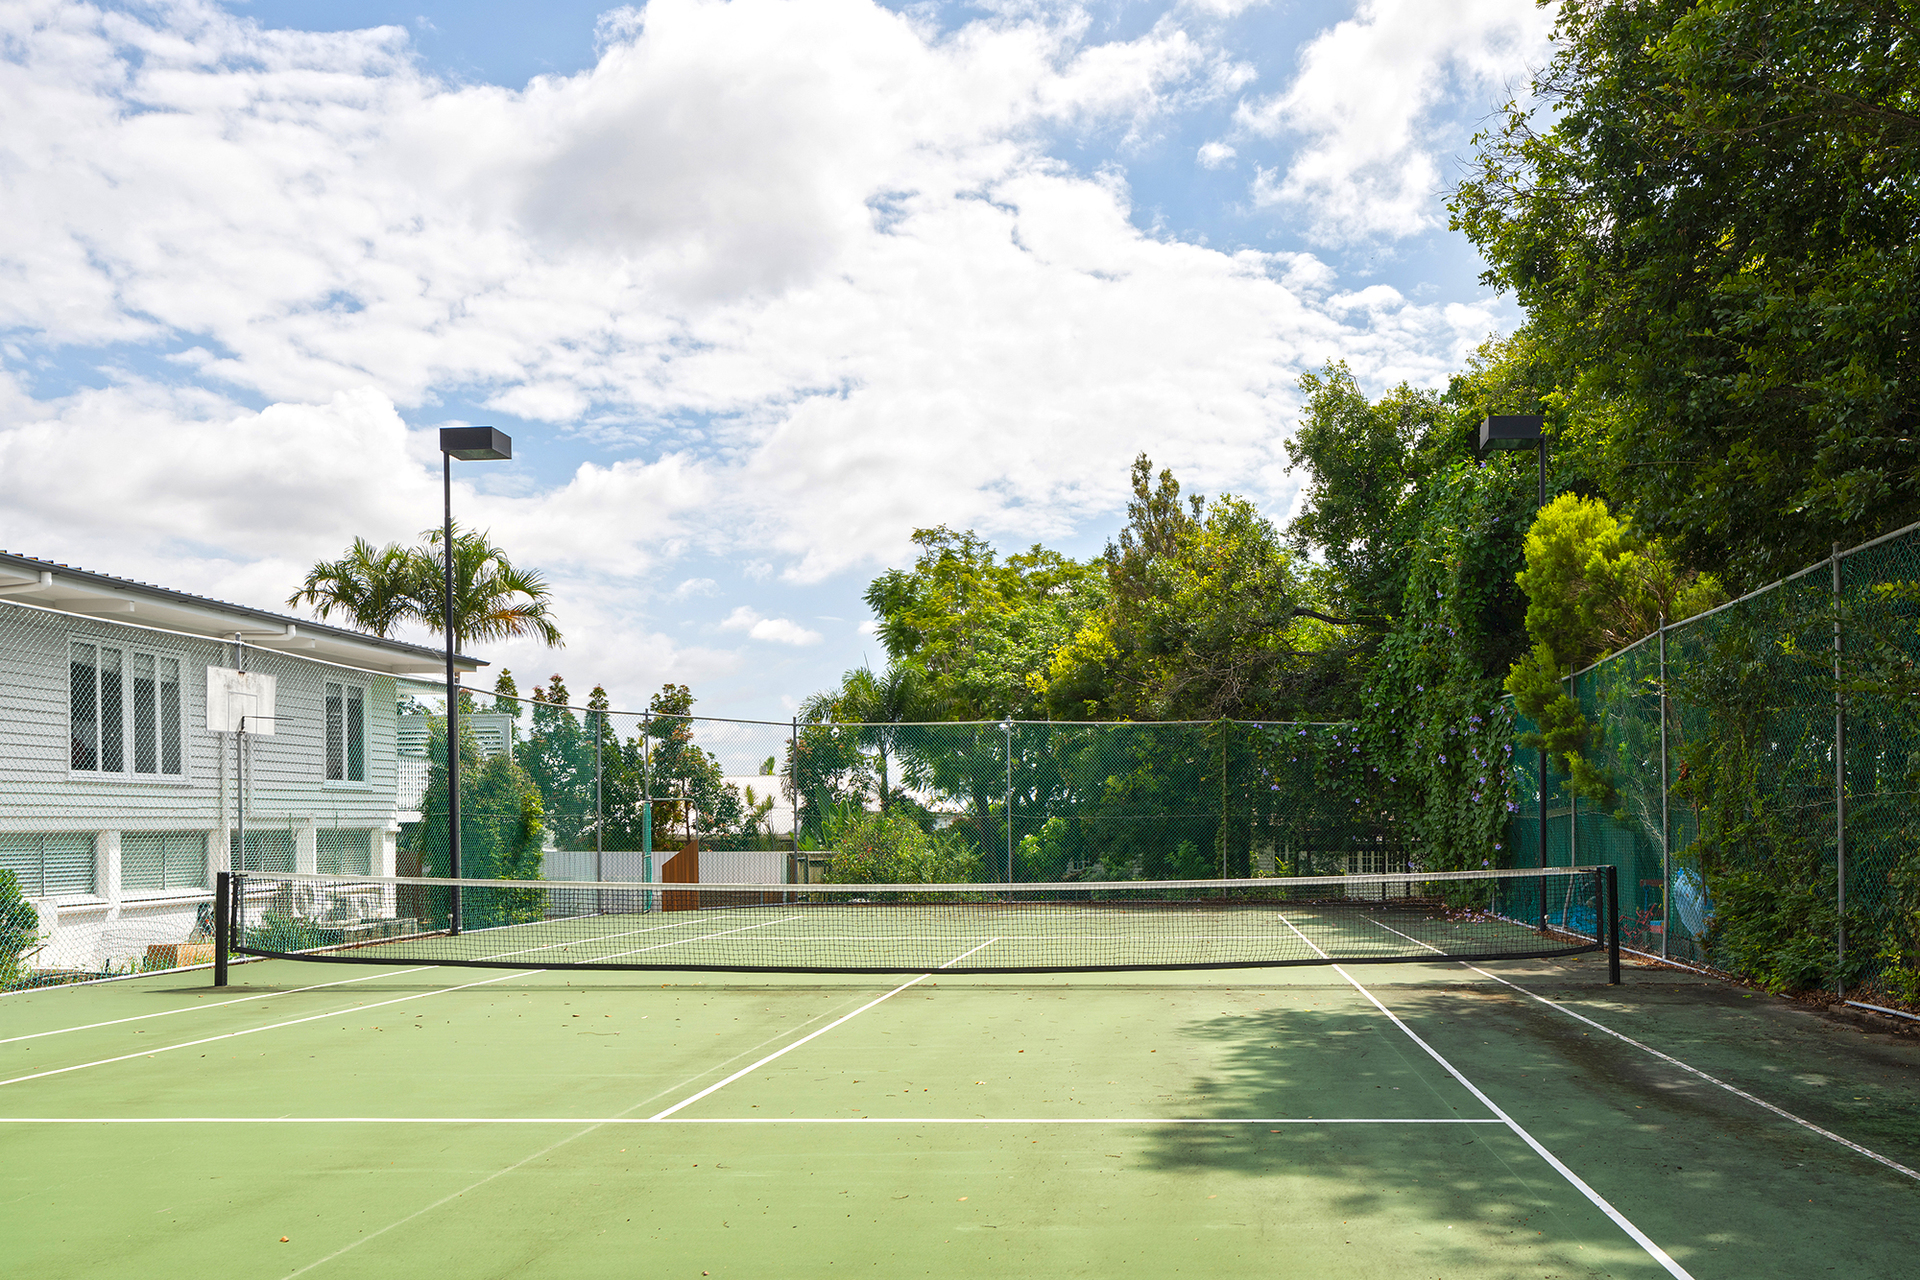 Charming Clayfield Queenslander with a Rare Full-Size Tennis Court